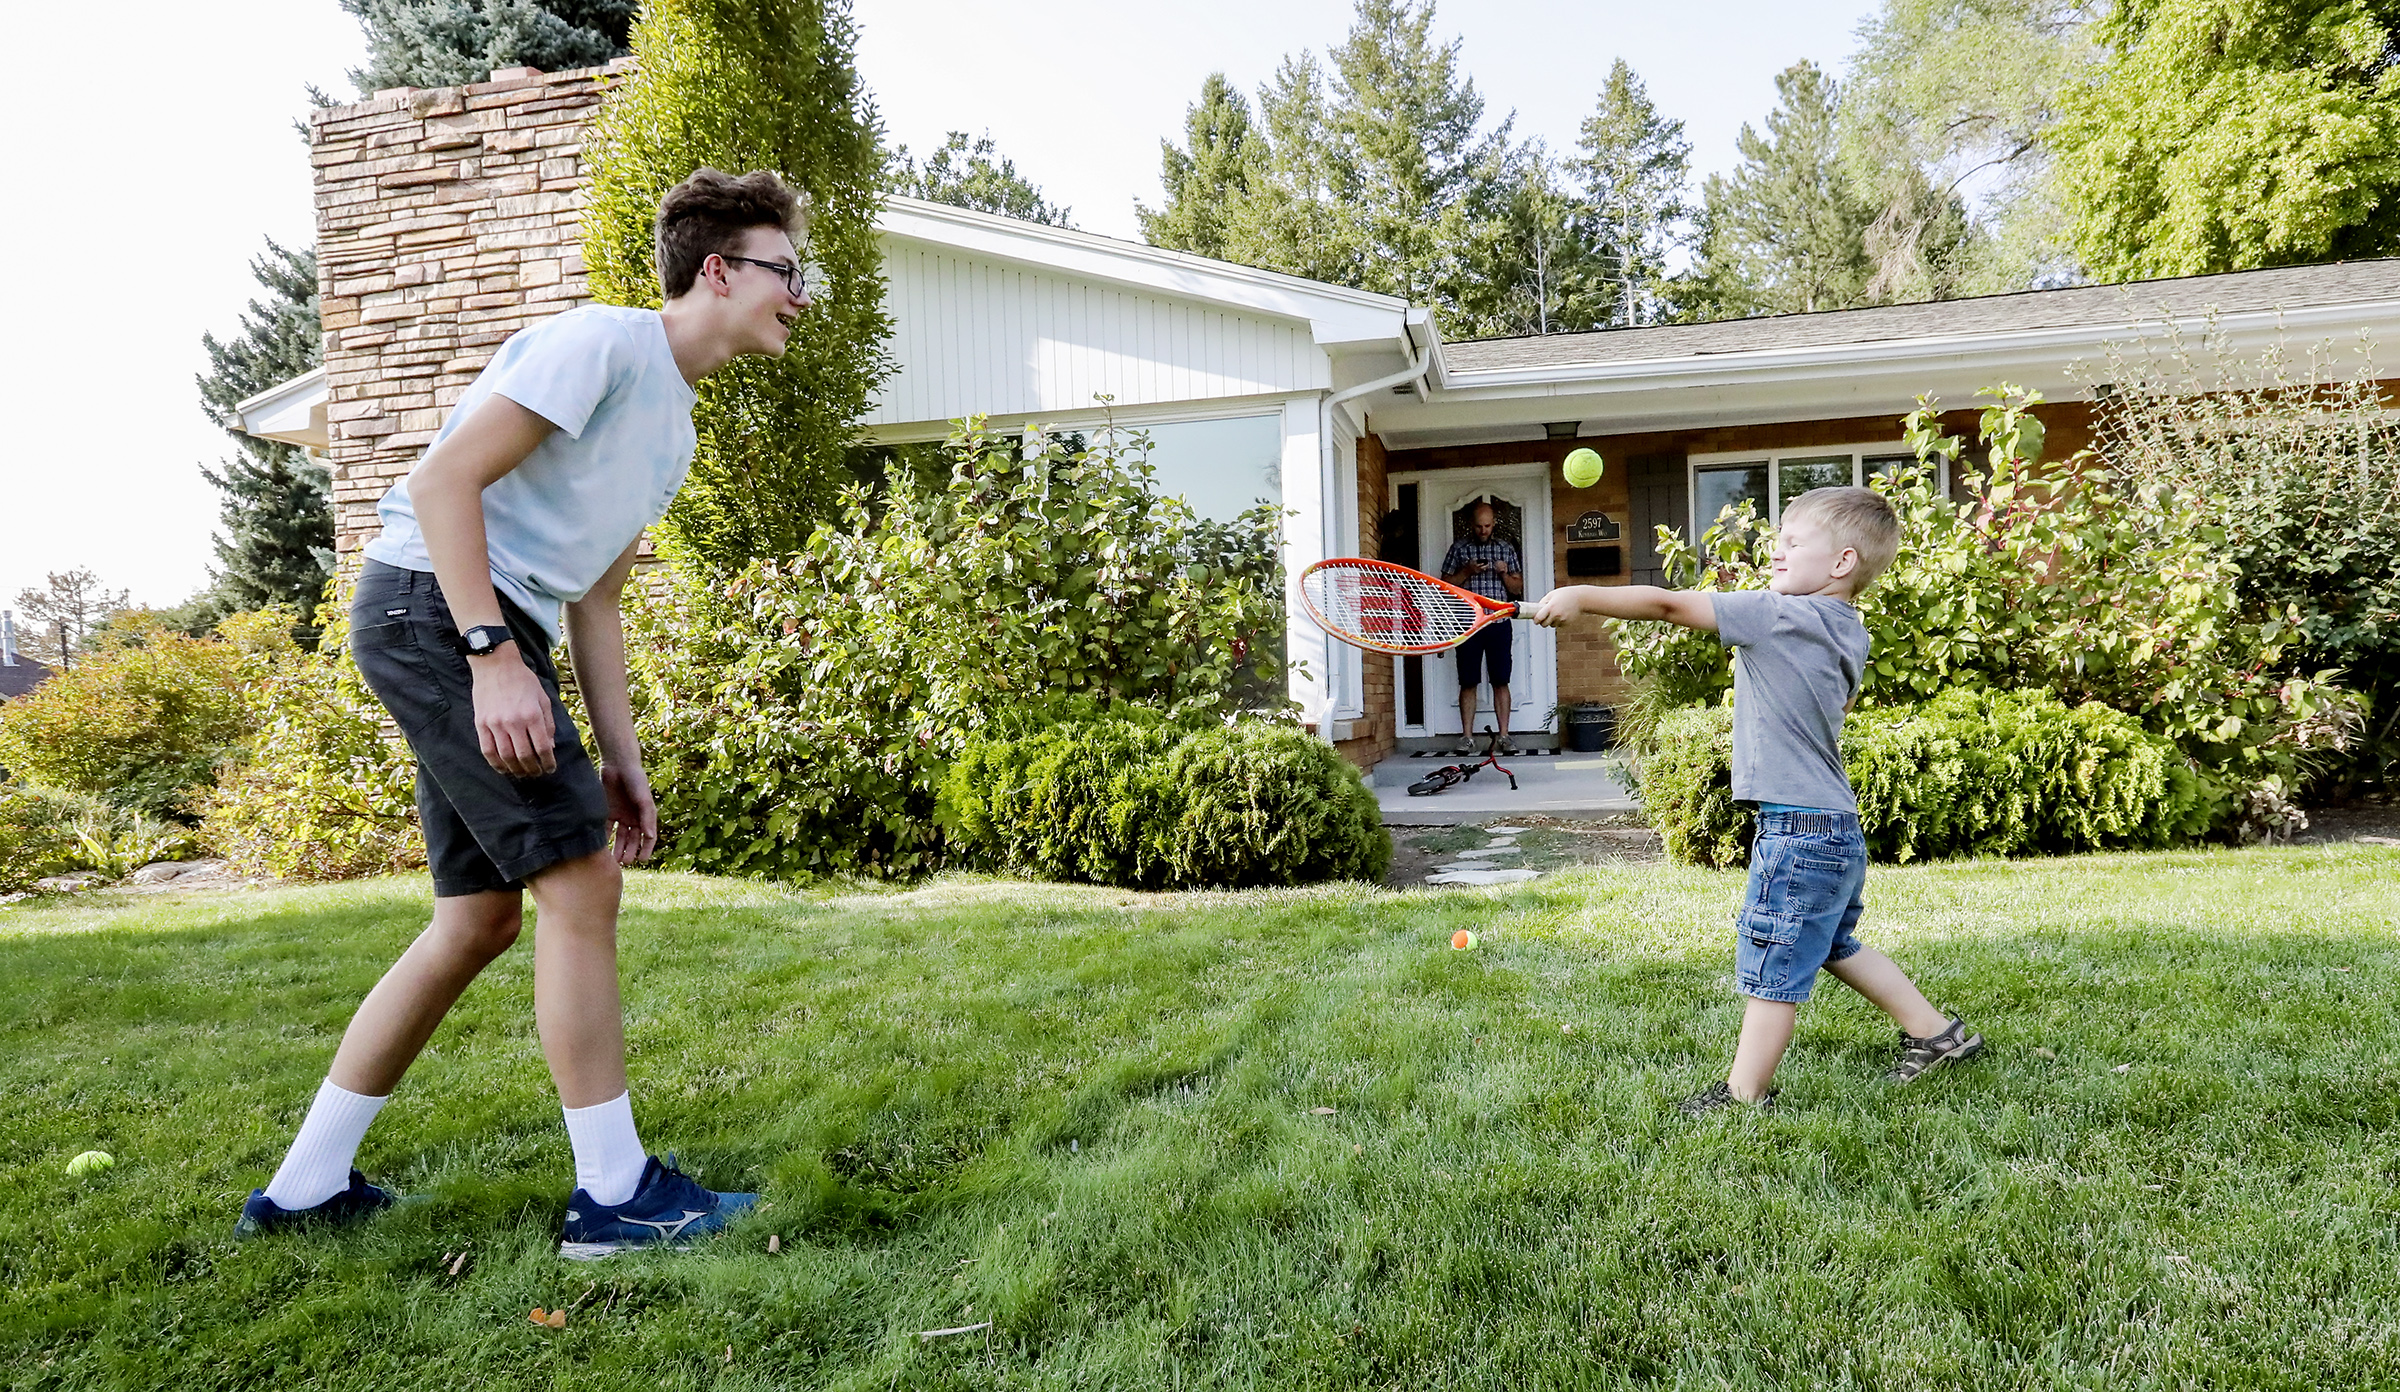 Peter Larsen plays with his brother George on the front lawn of their home in Salt Lake City on Wednesday, Sept. 16, 2020.